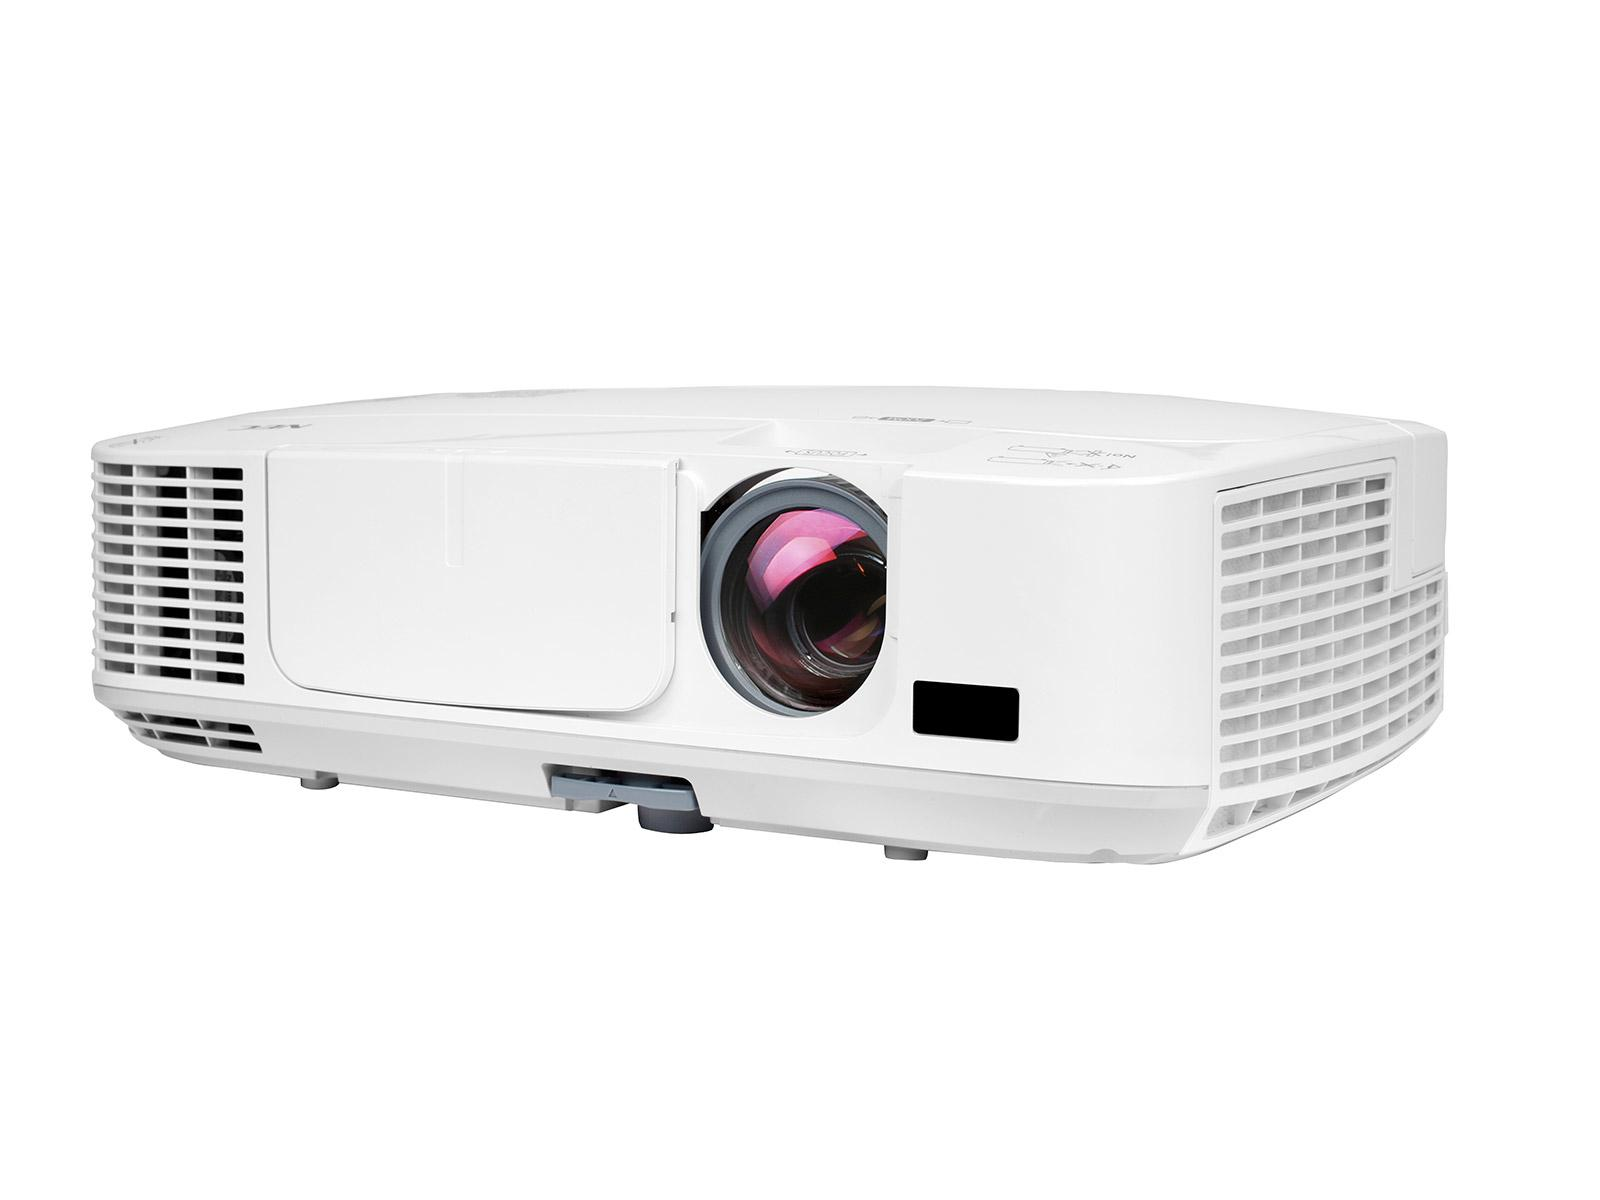 NEC projector M311X - 3100lm, x 1.7 zoom, 3000:1, 10,000h lamp, Crestron roomview function, XGA